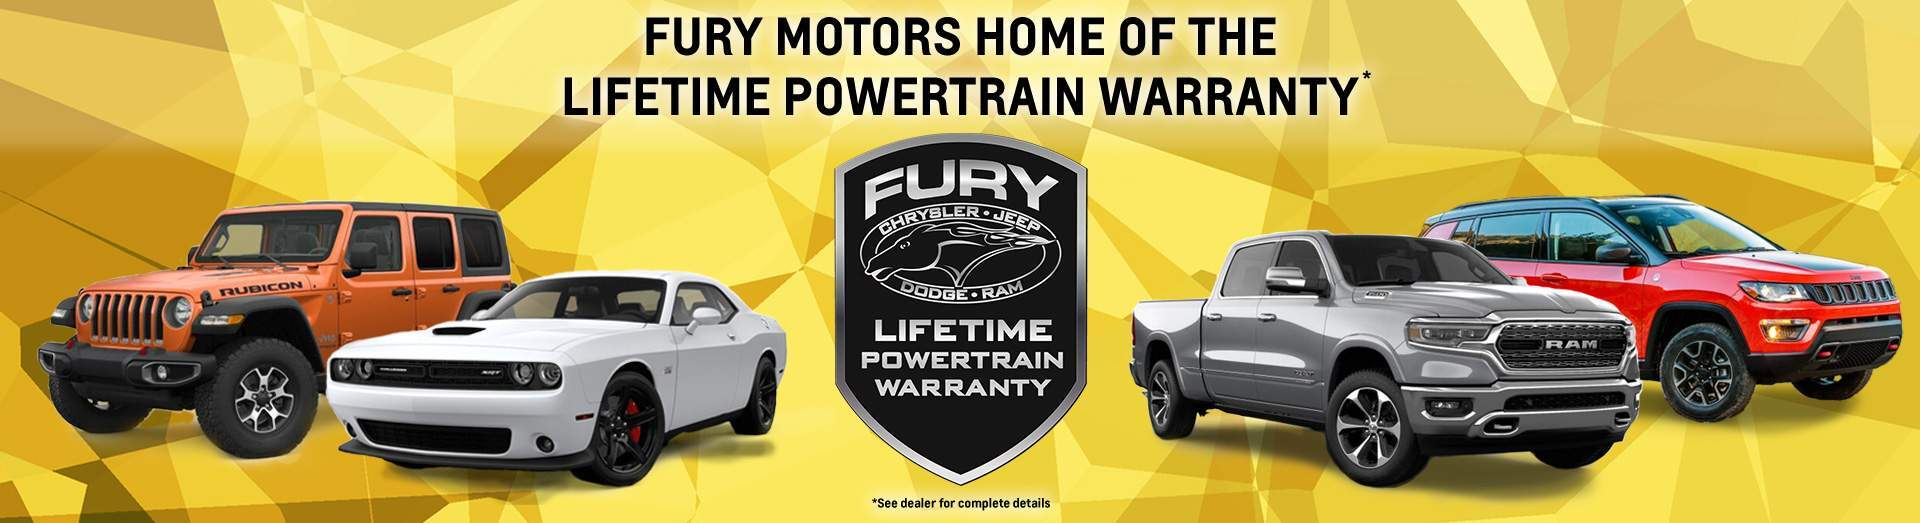 Fury Complimentary Lifetime Powertrain Warranty